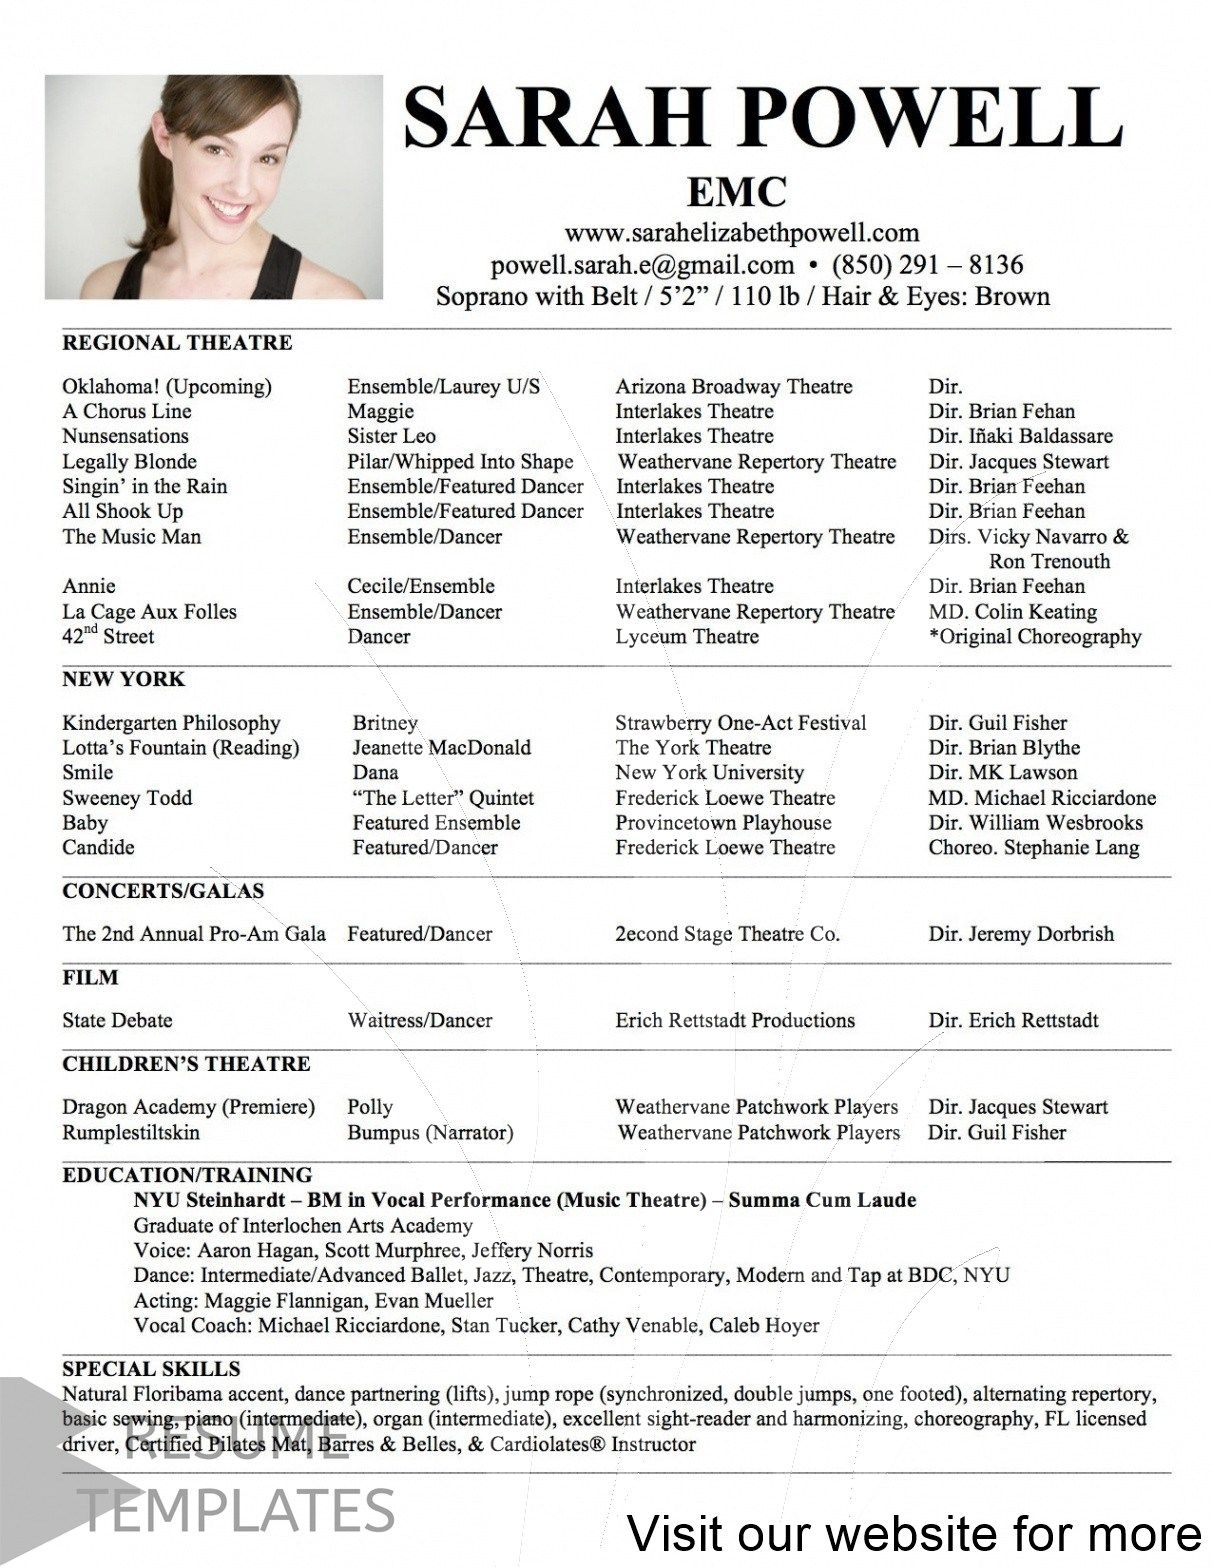 resume examples no experience acting template child dance for audition rules freshers Resume Child Dance Resume For Audition